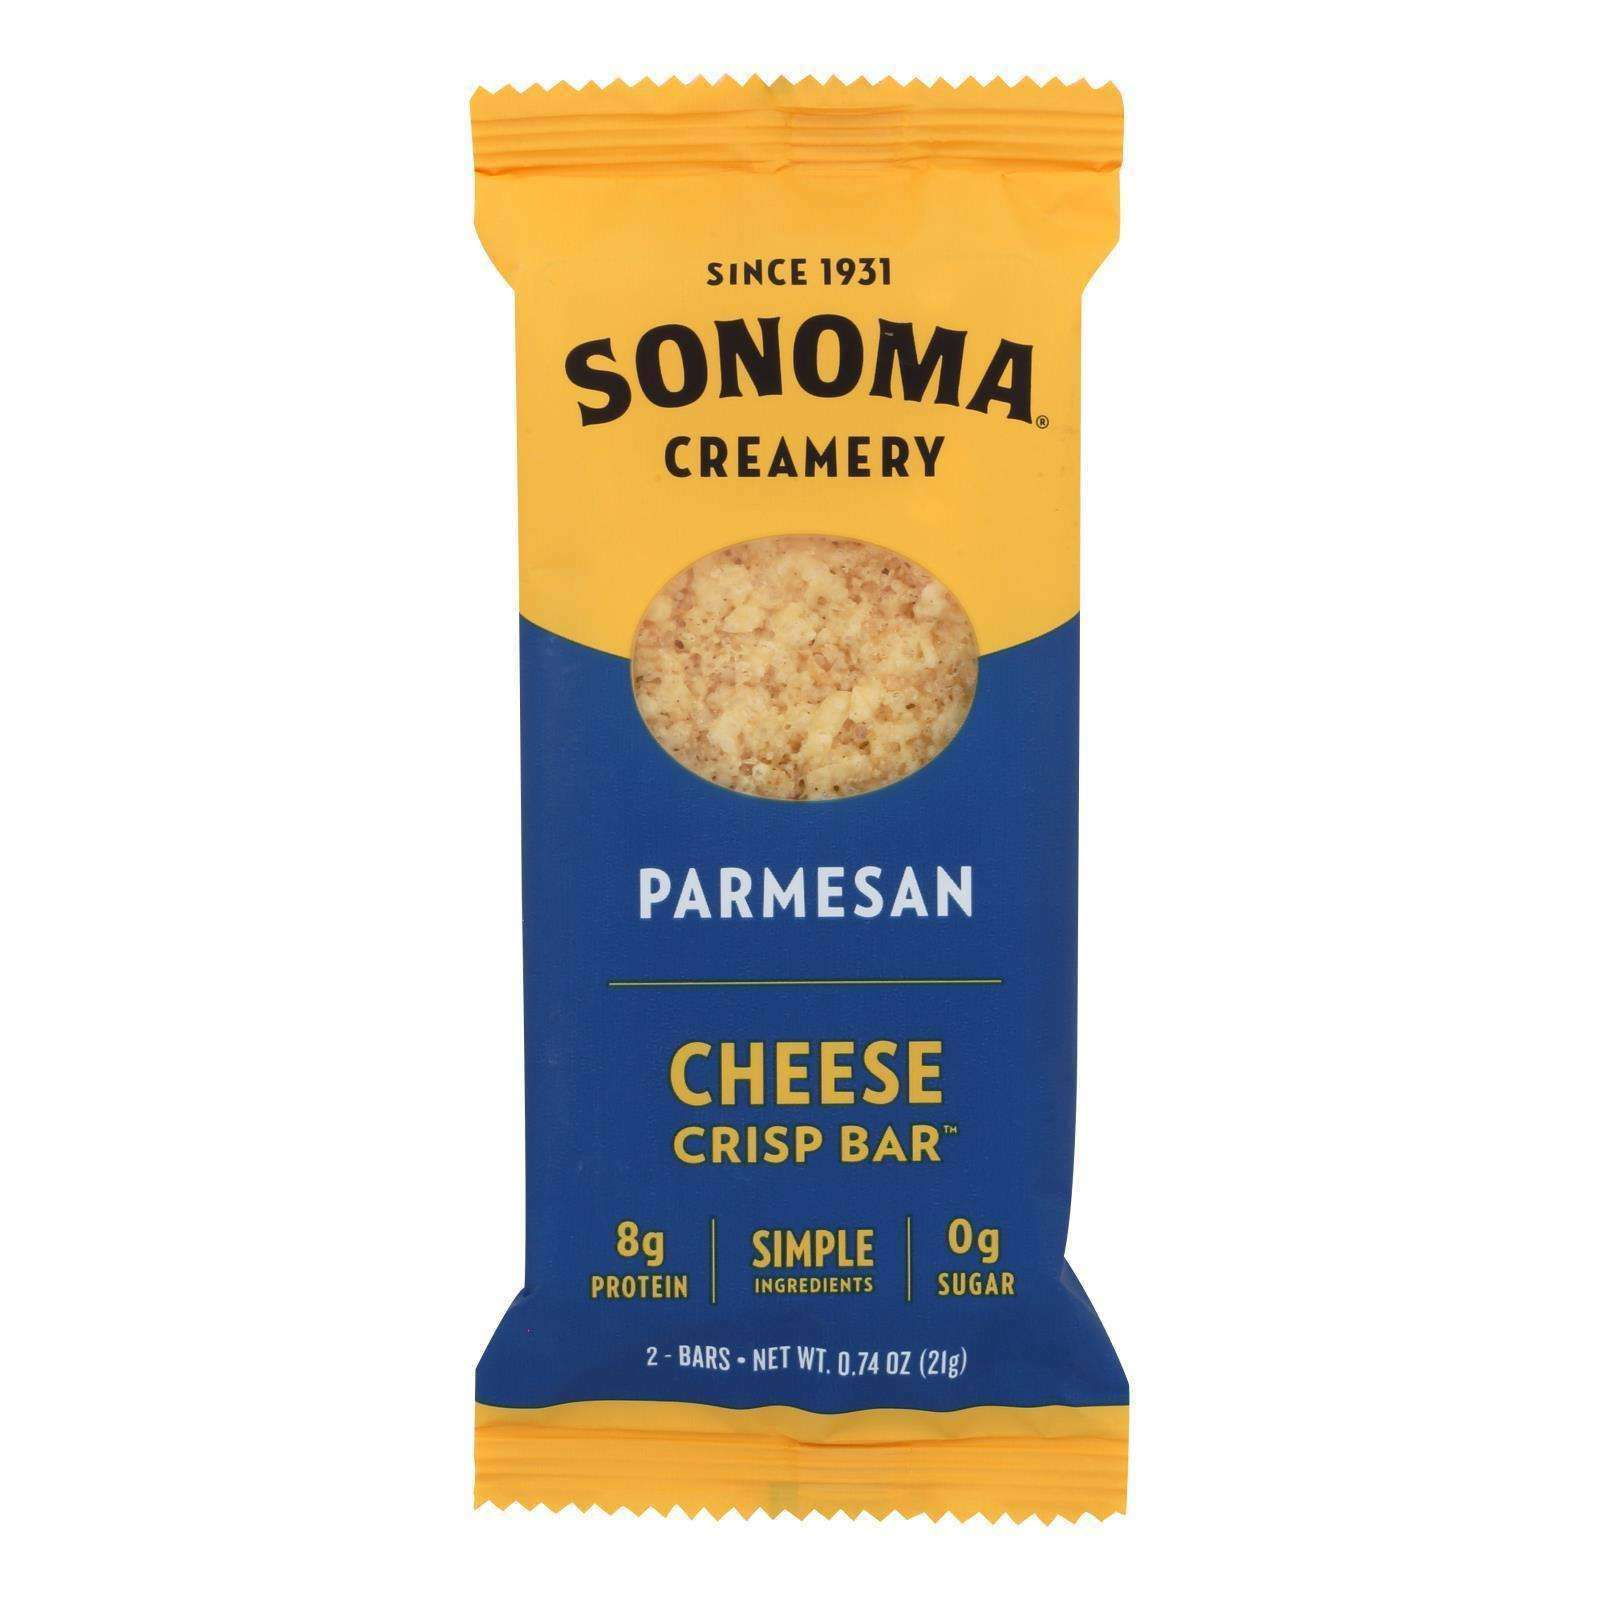 Sonoma Creamery Parmesan Cheese Crisp Bar - Case Of 12 - .74 Oz - BeeGreen